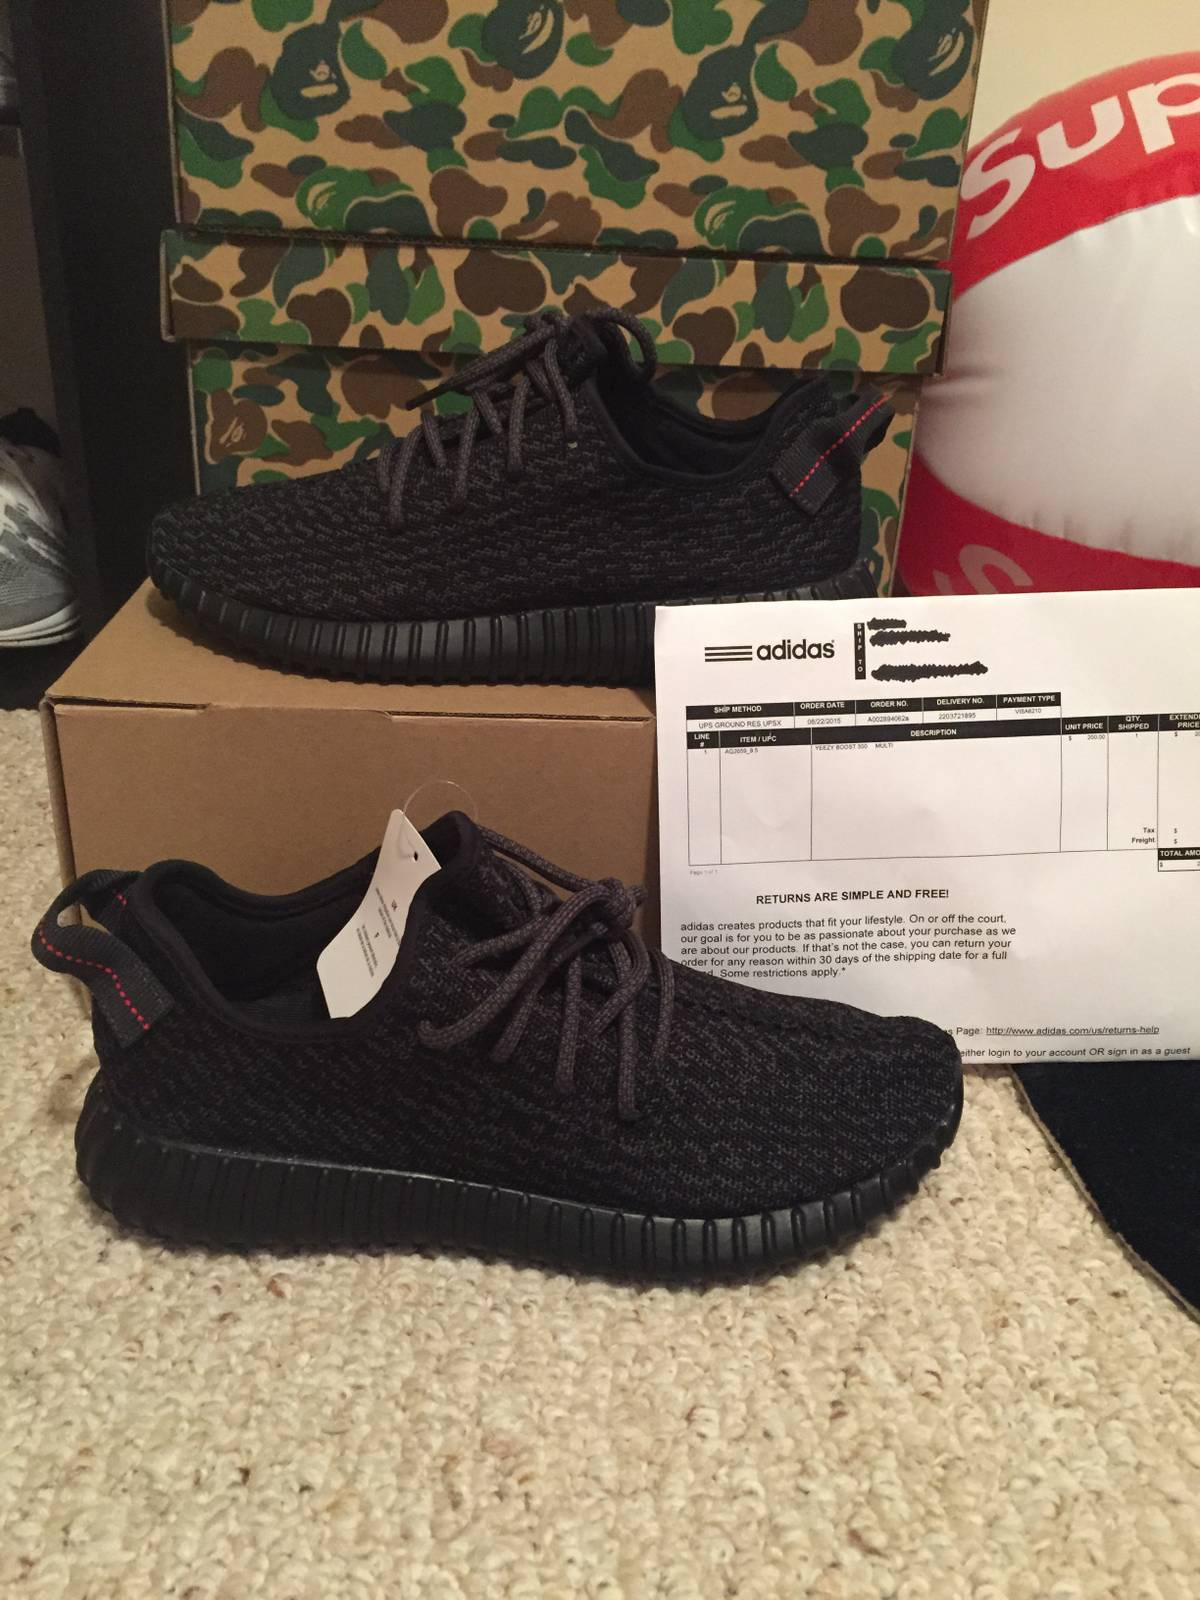 31061dfd7 Yeezy Boost Pirate Black Yeezy Boost 350 Size 9.5 - for Sale - Grailed